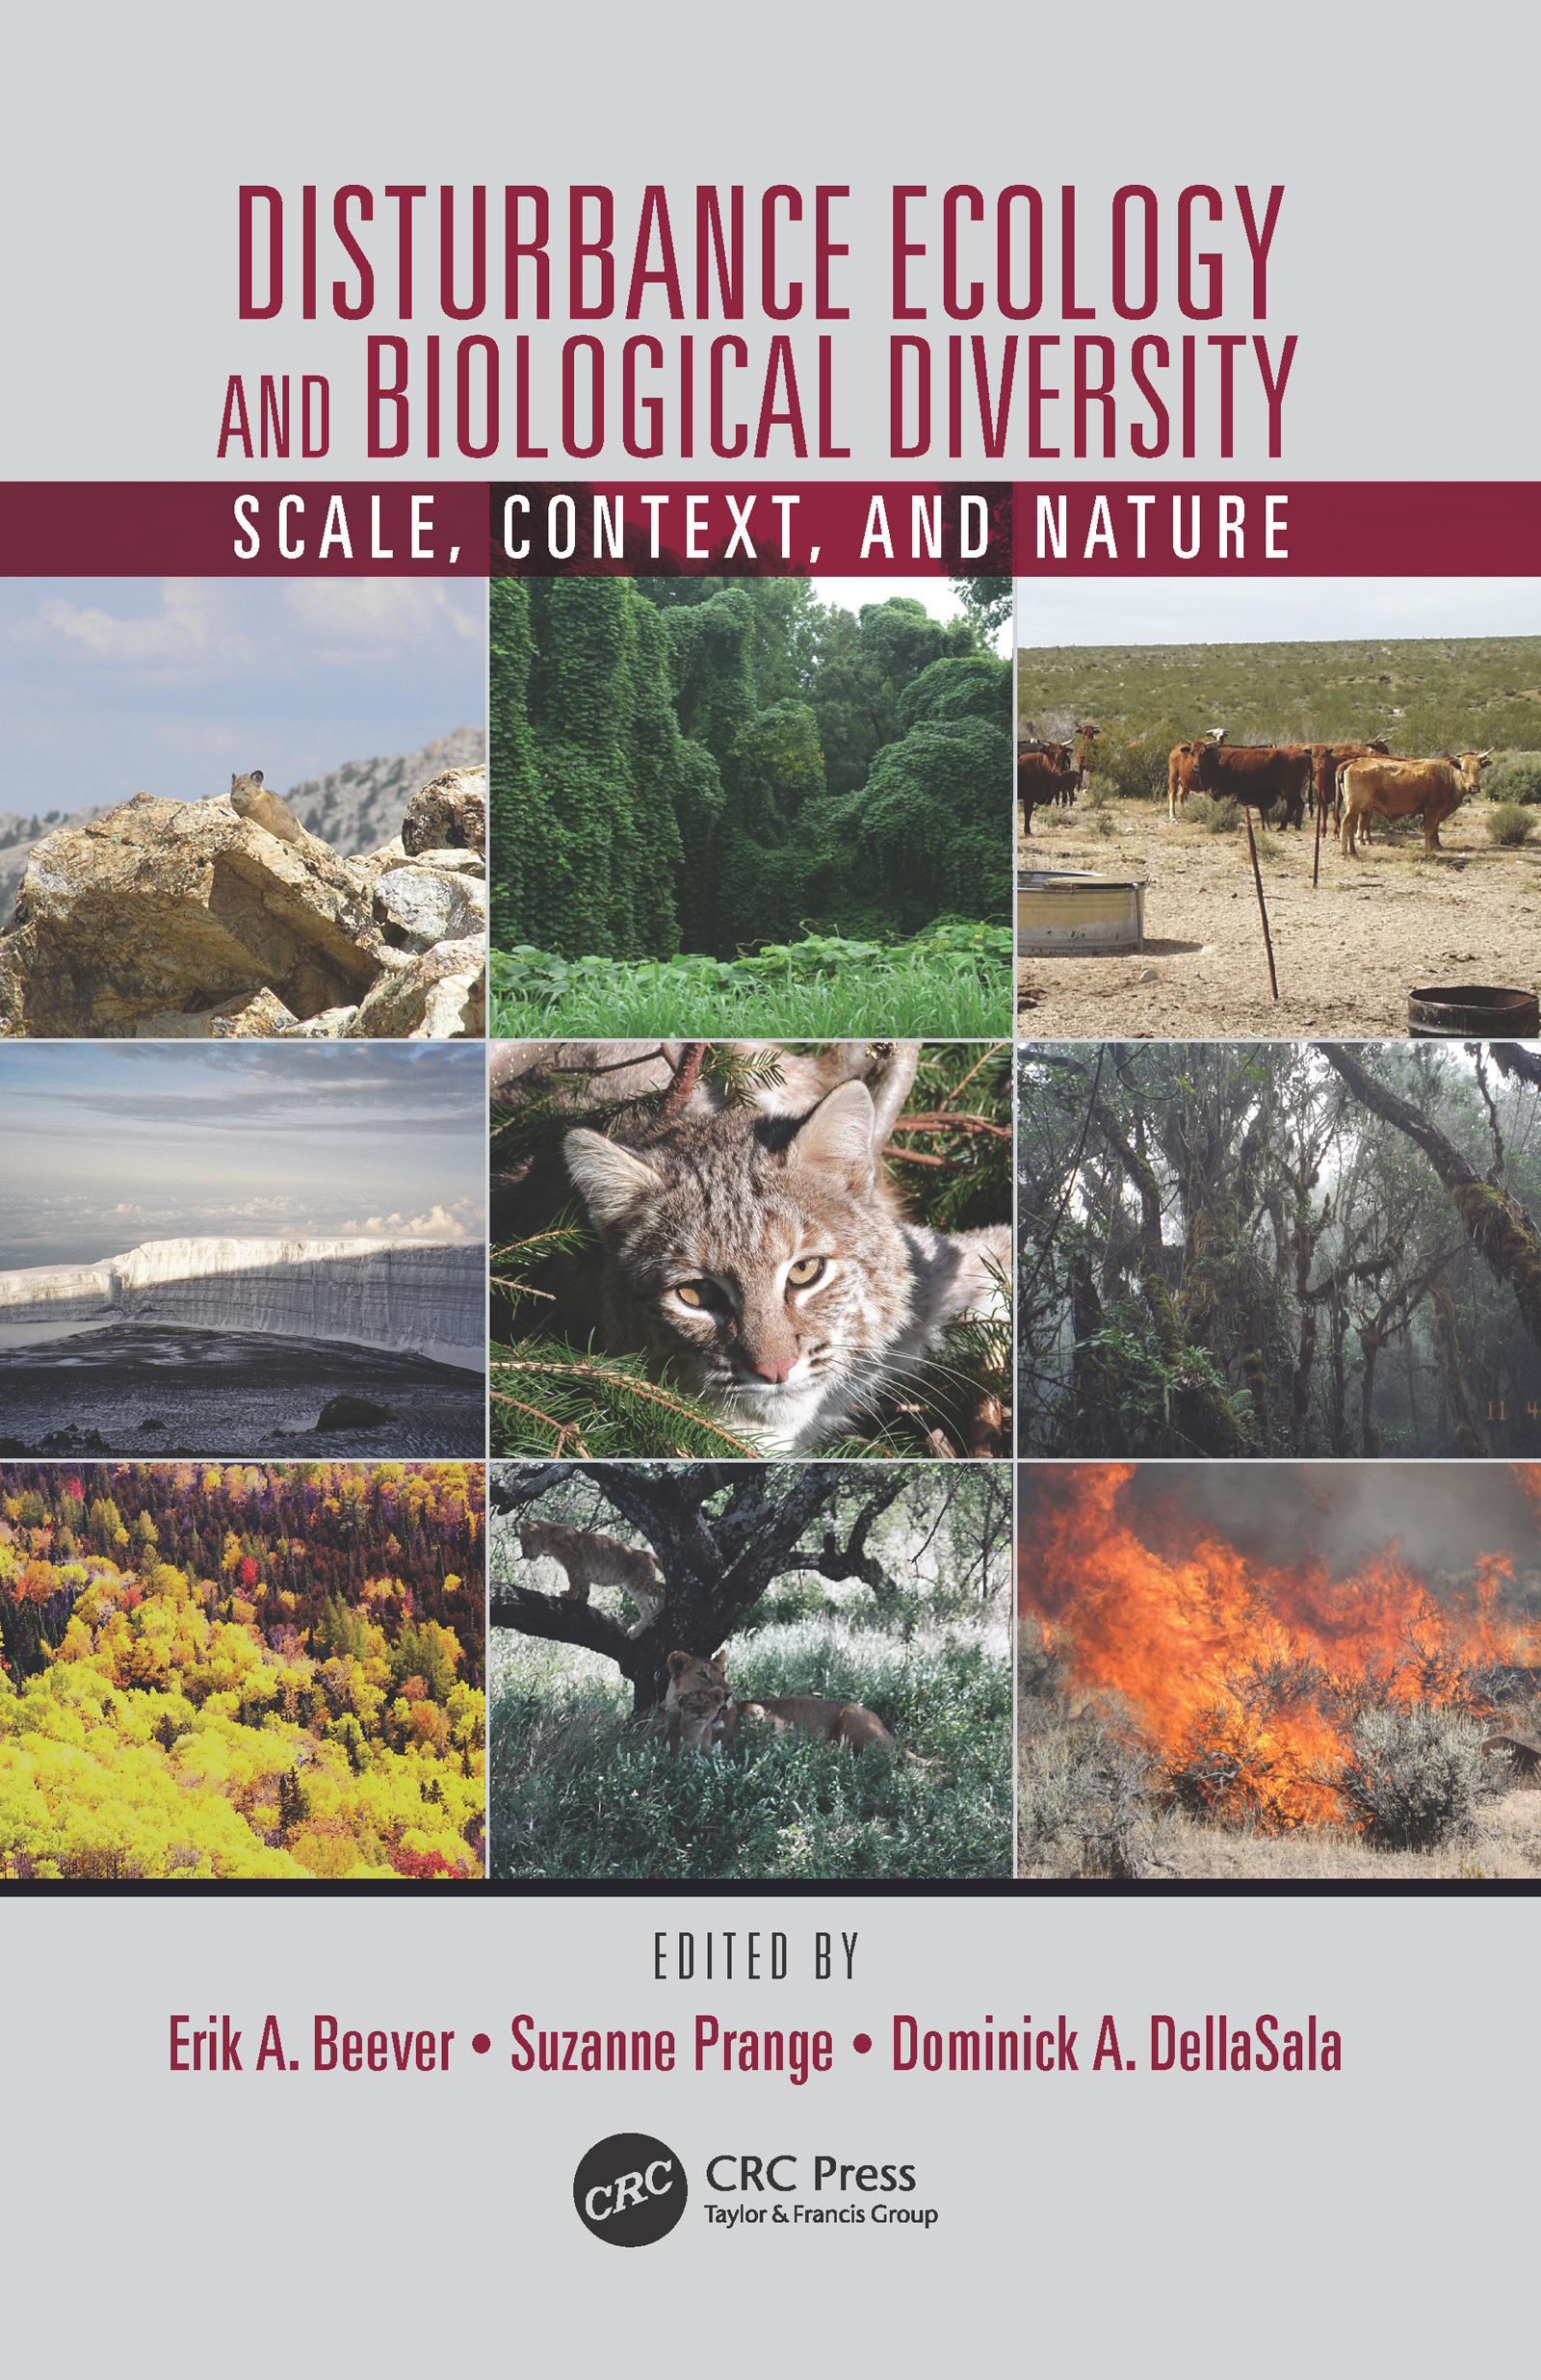 Disturbance Ecology and Biological Diversity